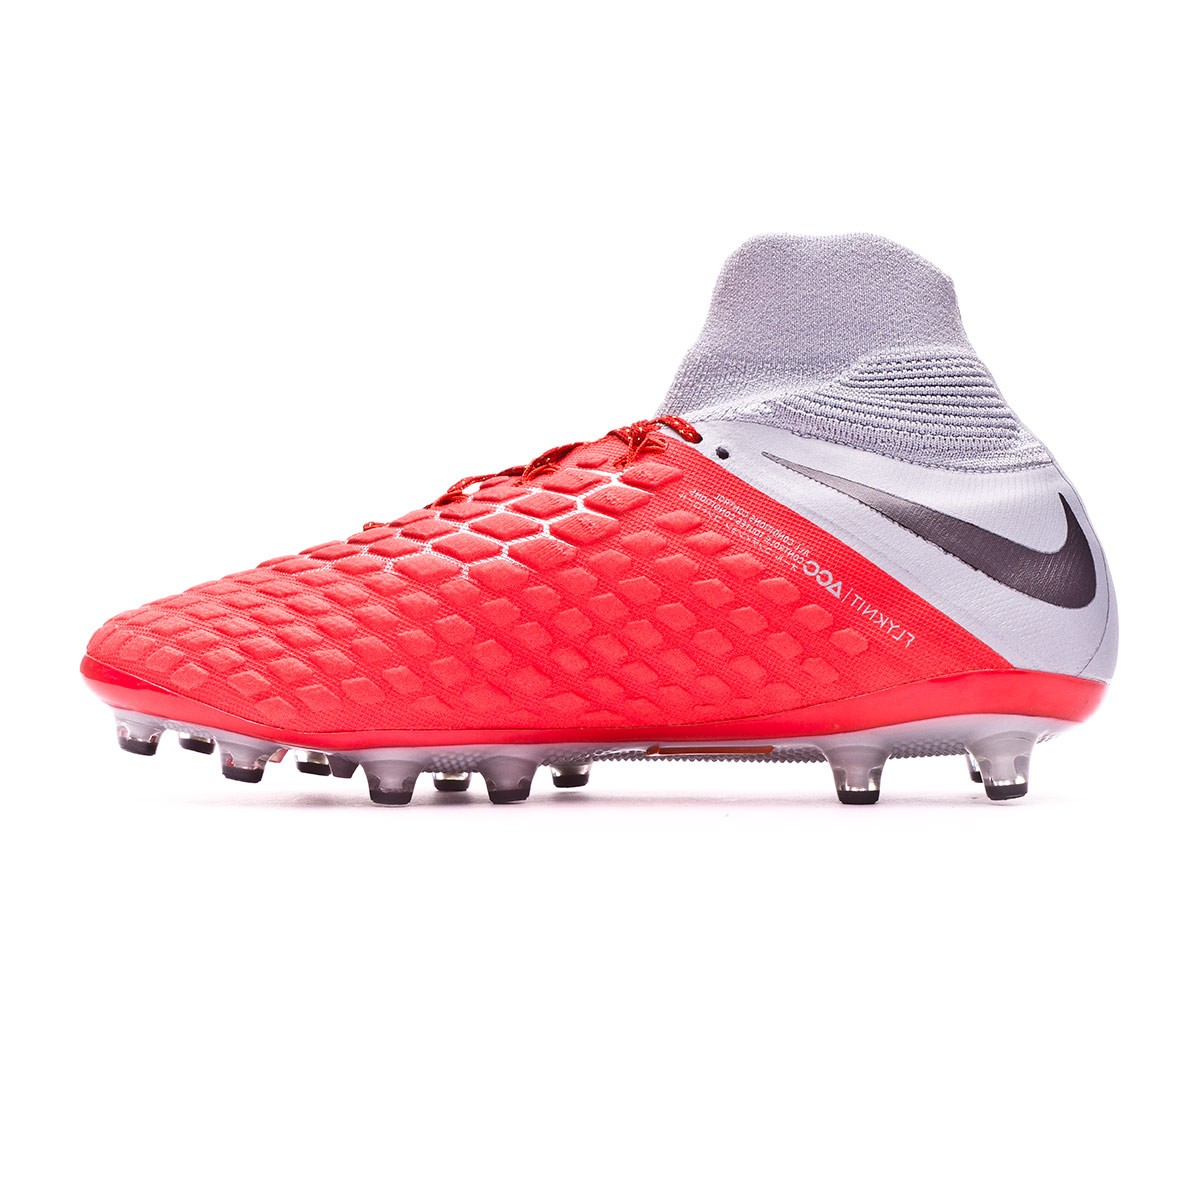 2609f2b6b3f1 Boot Nike Hypervenom Phantom III Elite DF AG-Pro Light crimson-Metallic  dark grey-Wolf grey - Leaked soccer